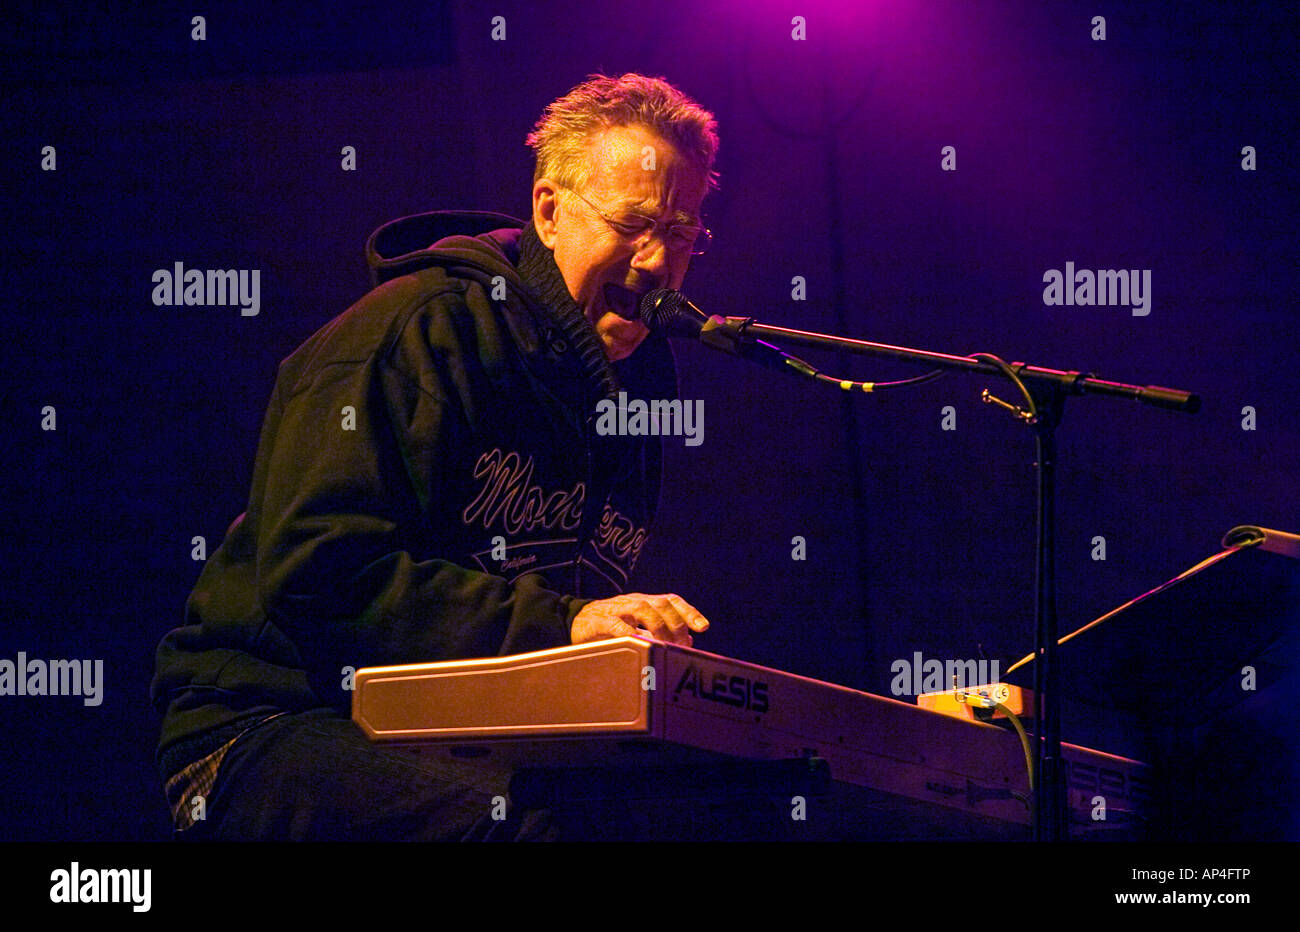 RAY MANZAREK plays the organ for RIDERS OF THE STORM formerly THE DOORS MONTEREY POP FESTIVAL 2007 CALIFORNIA & RAY MANZAREK plays the organ for RIDERS OF THE STORM formerly THE ...